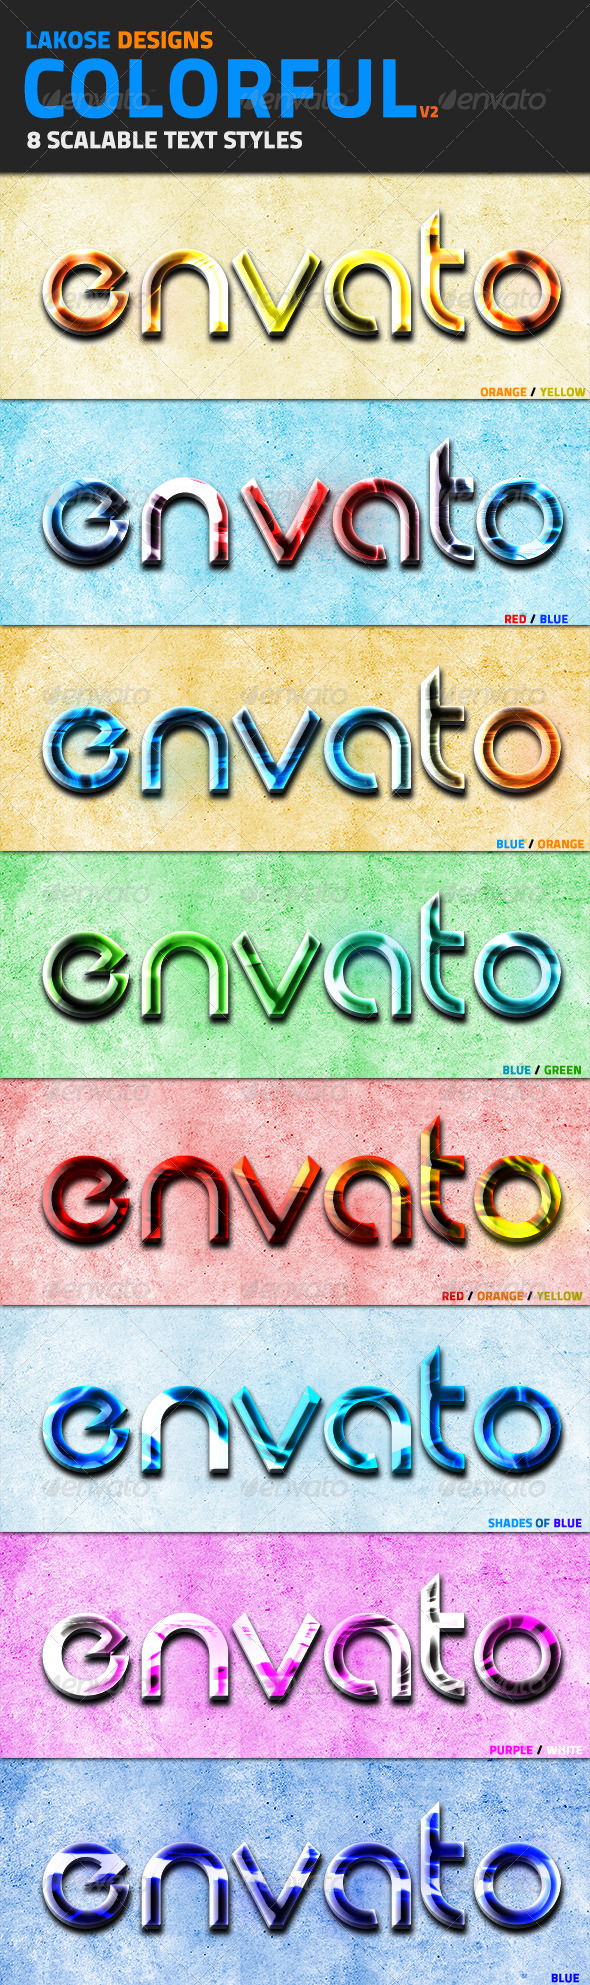 GraphicRiver Colorful Text Styles V2 4802606